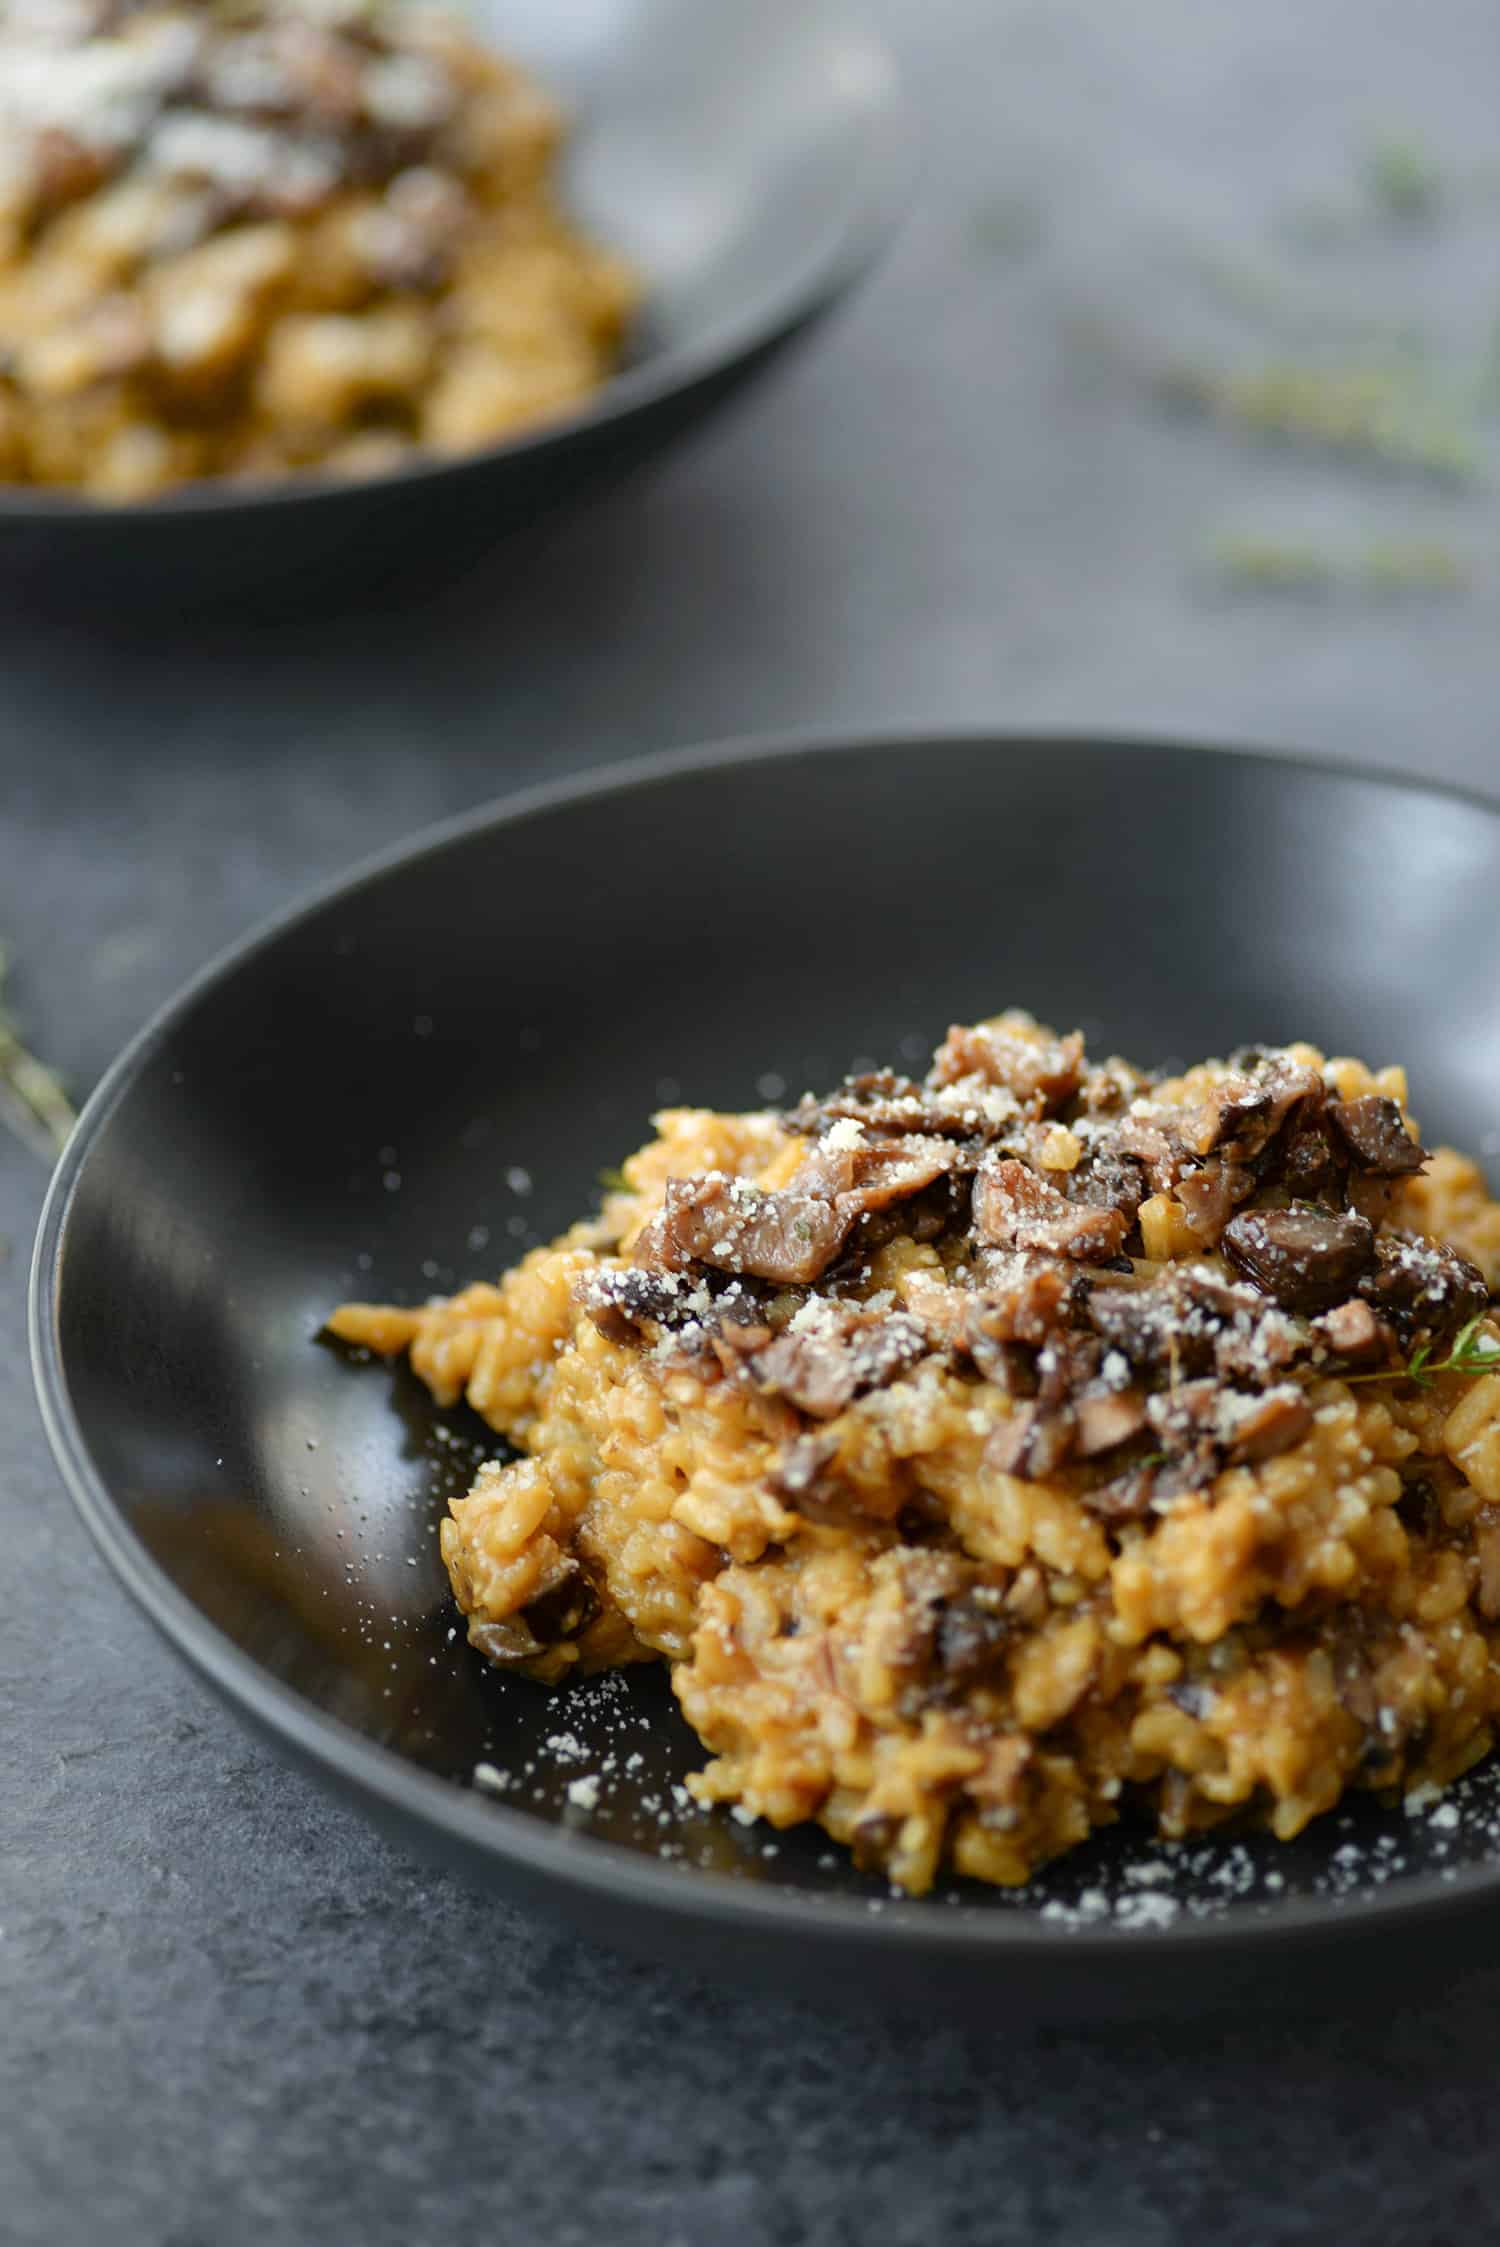 Wild Mushroom Risotto! If you love risotto, you've gotta try this recipe. Homemade wild mushroom stock with crispy, thyme roasted mushrooms with creamy risotto. Vegetarian, easily vegan. | www.delishknowledge.com